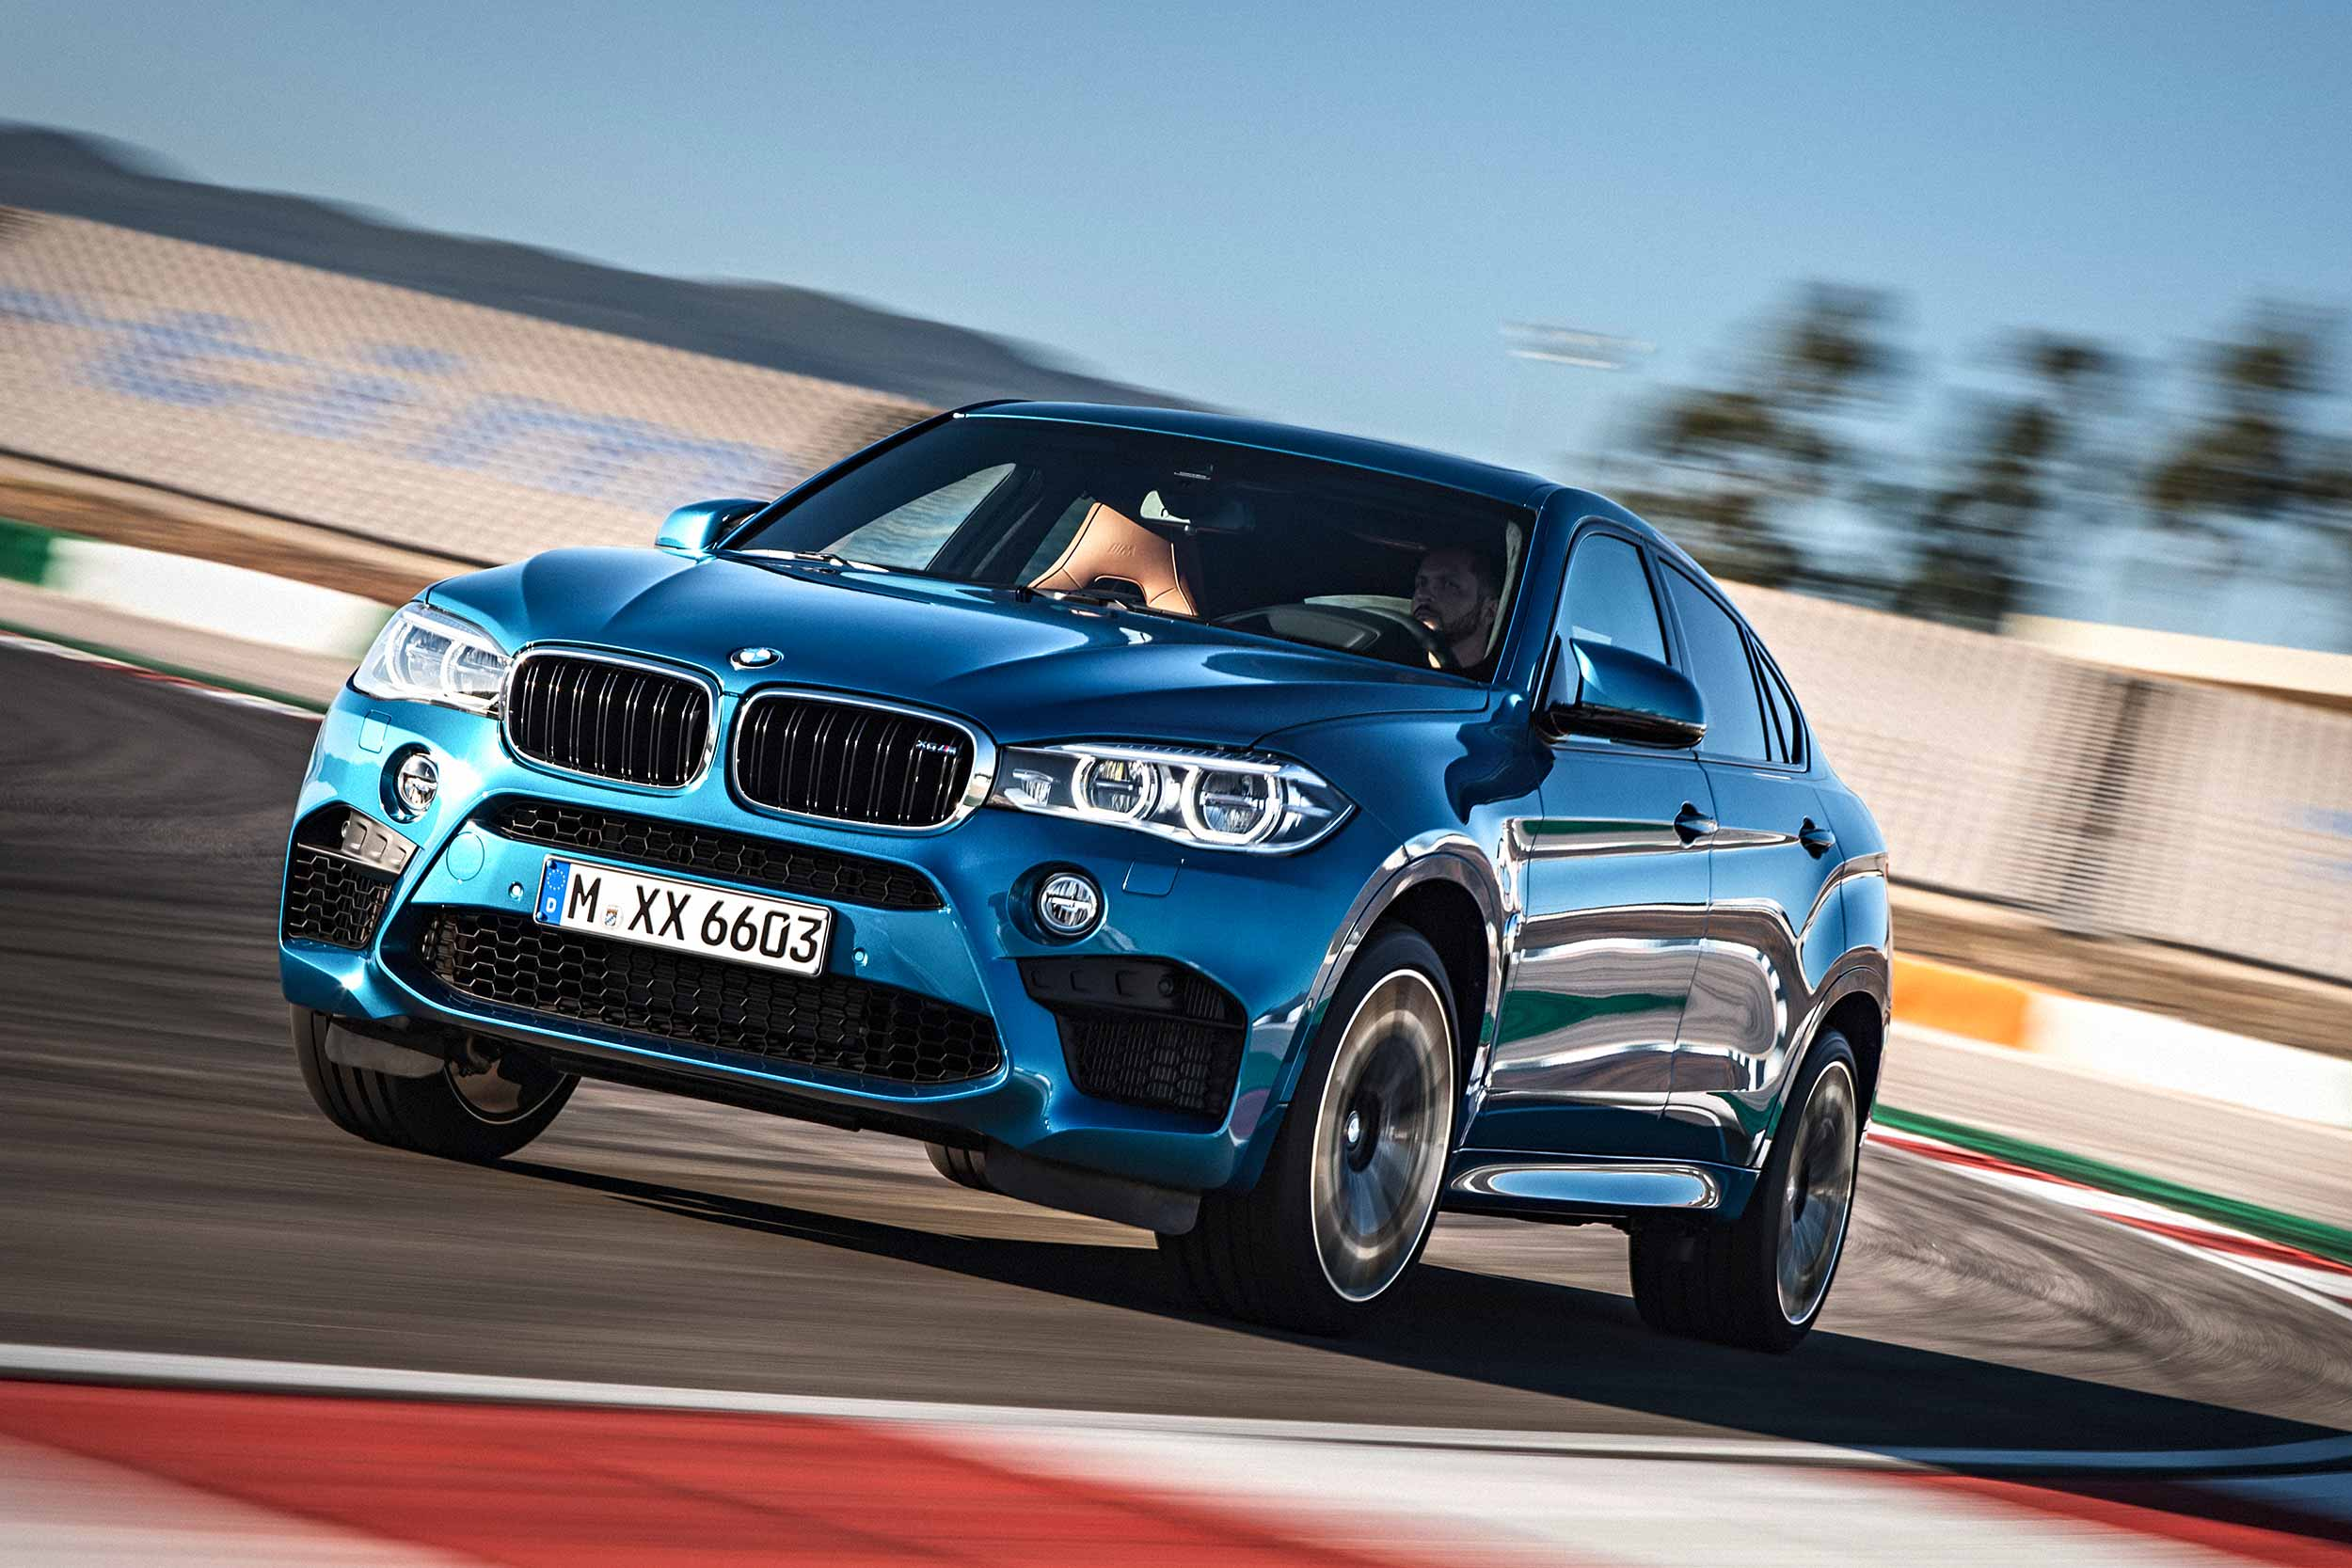 bmw will be sold cars news year a car next the gen speed debut top as this model suvs